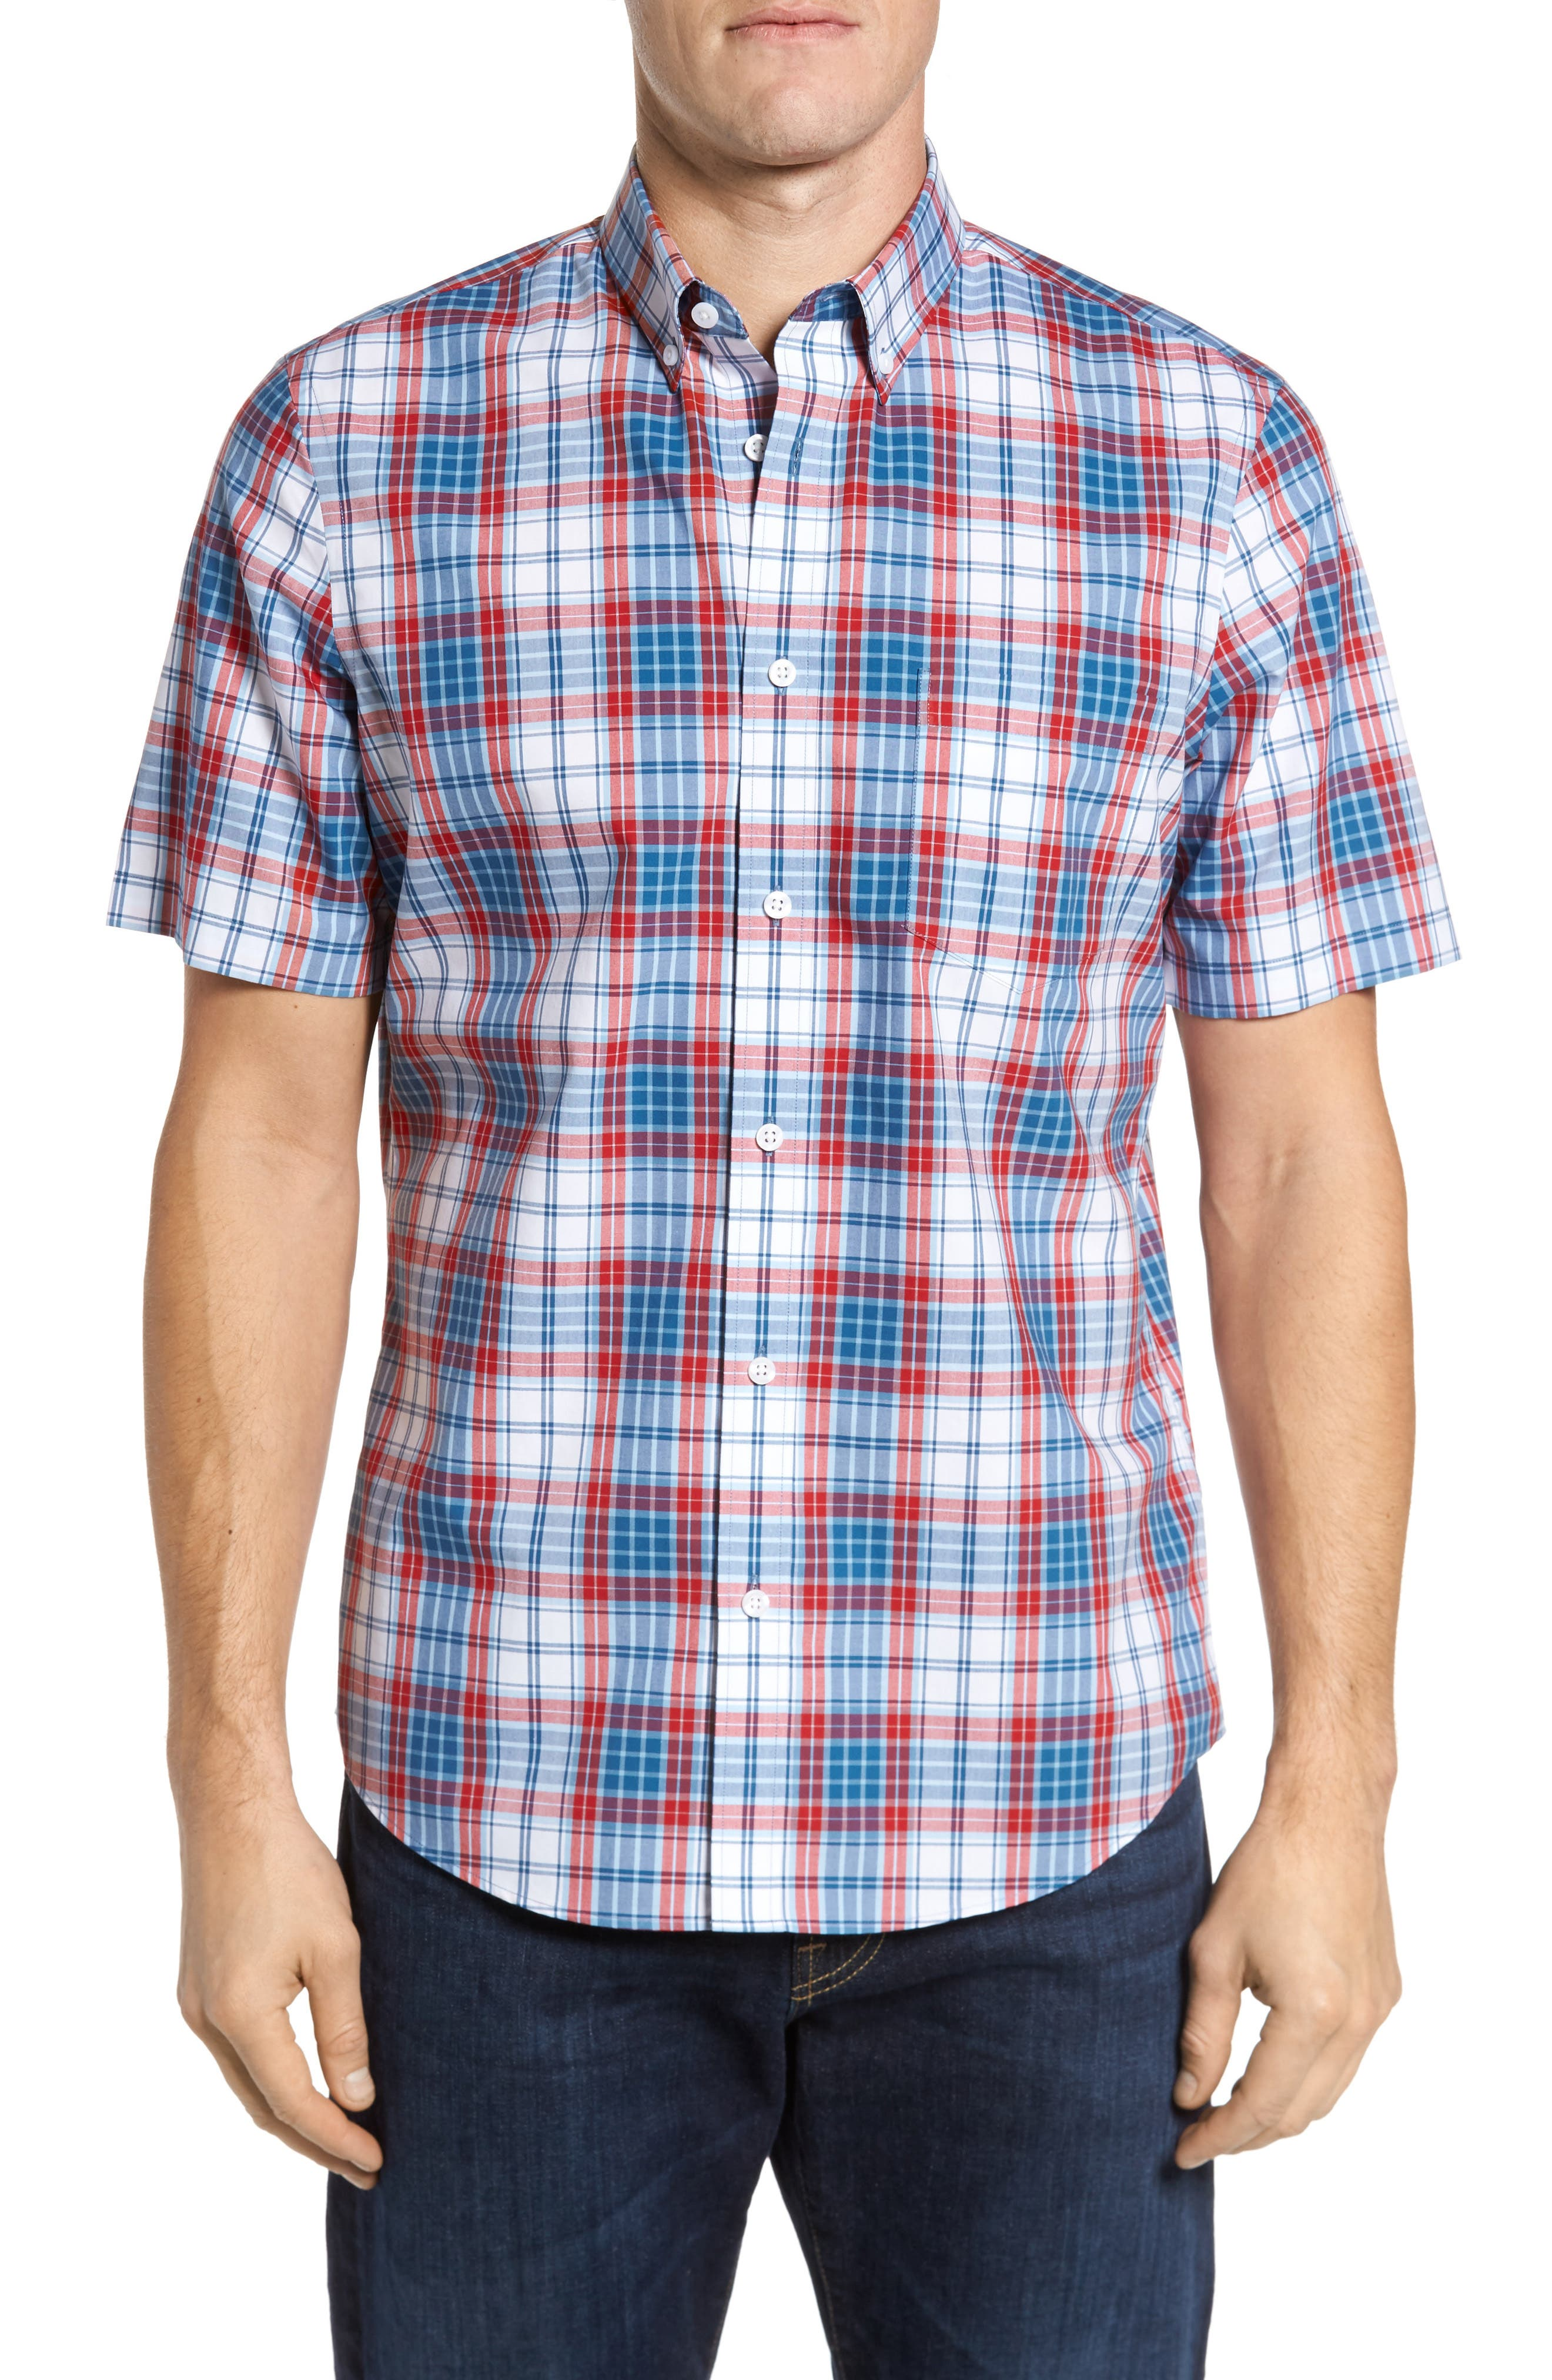 Plaid Sport Shirt,                             Main thumbnail 1, color,                             100